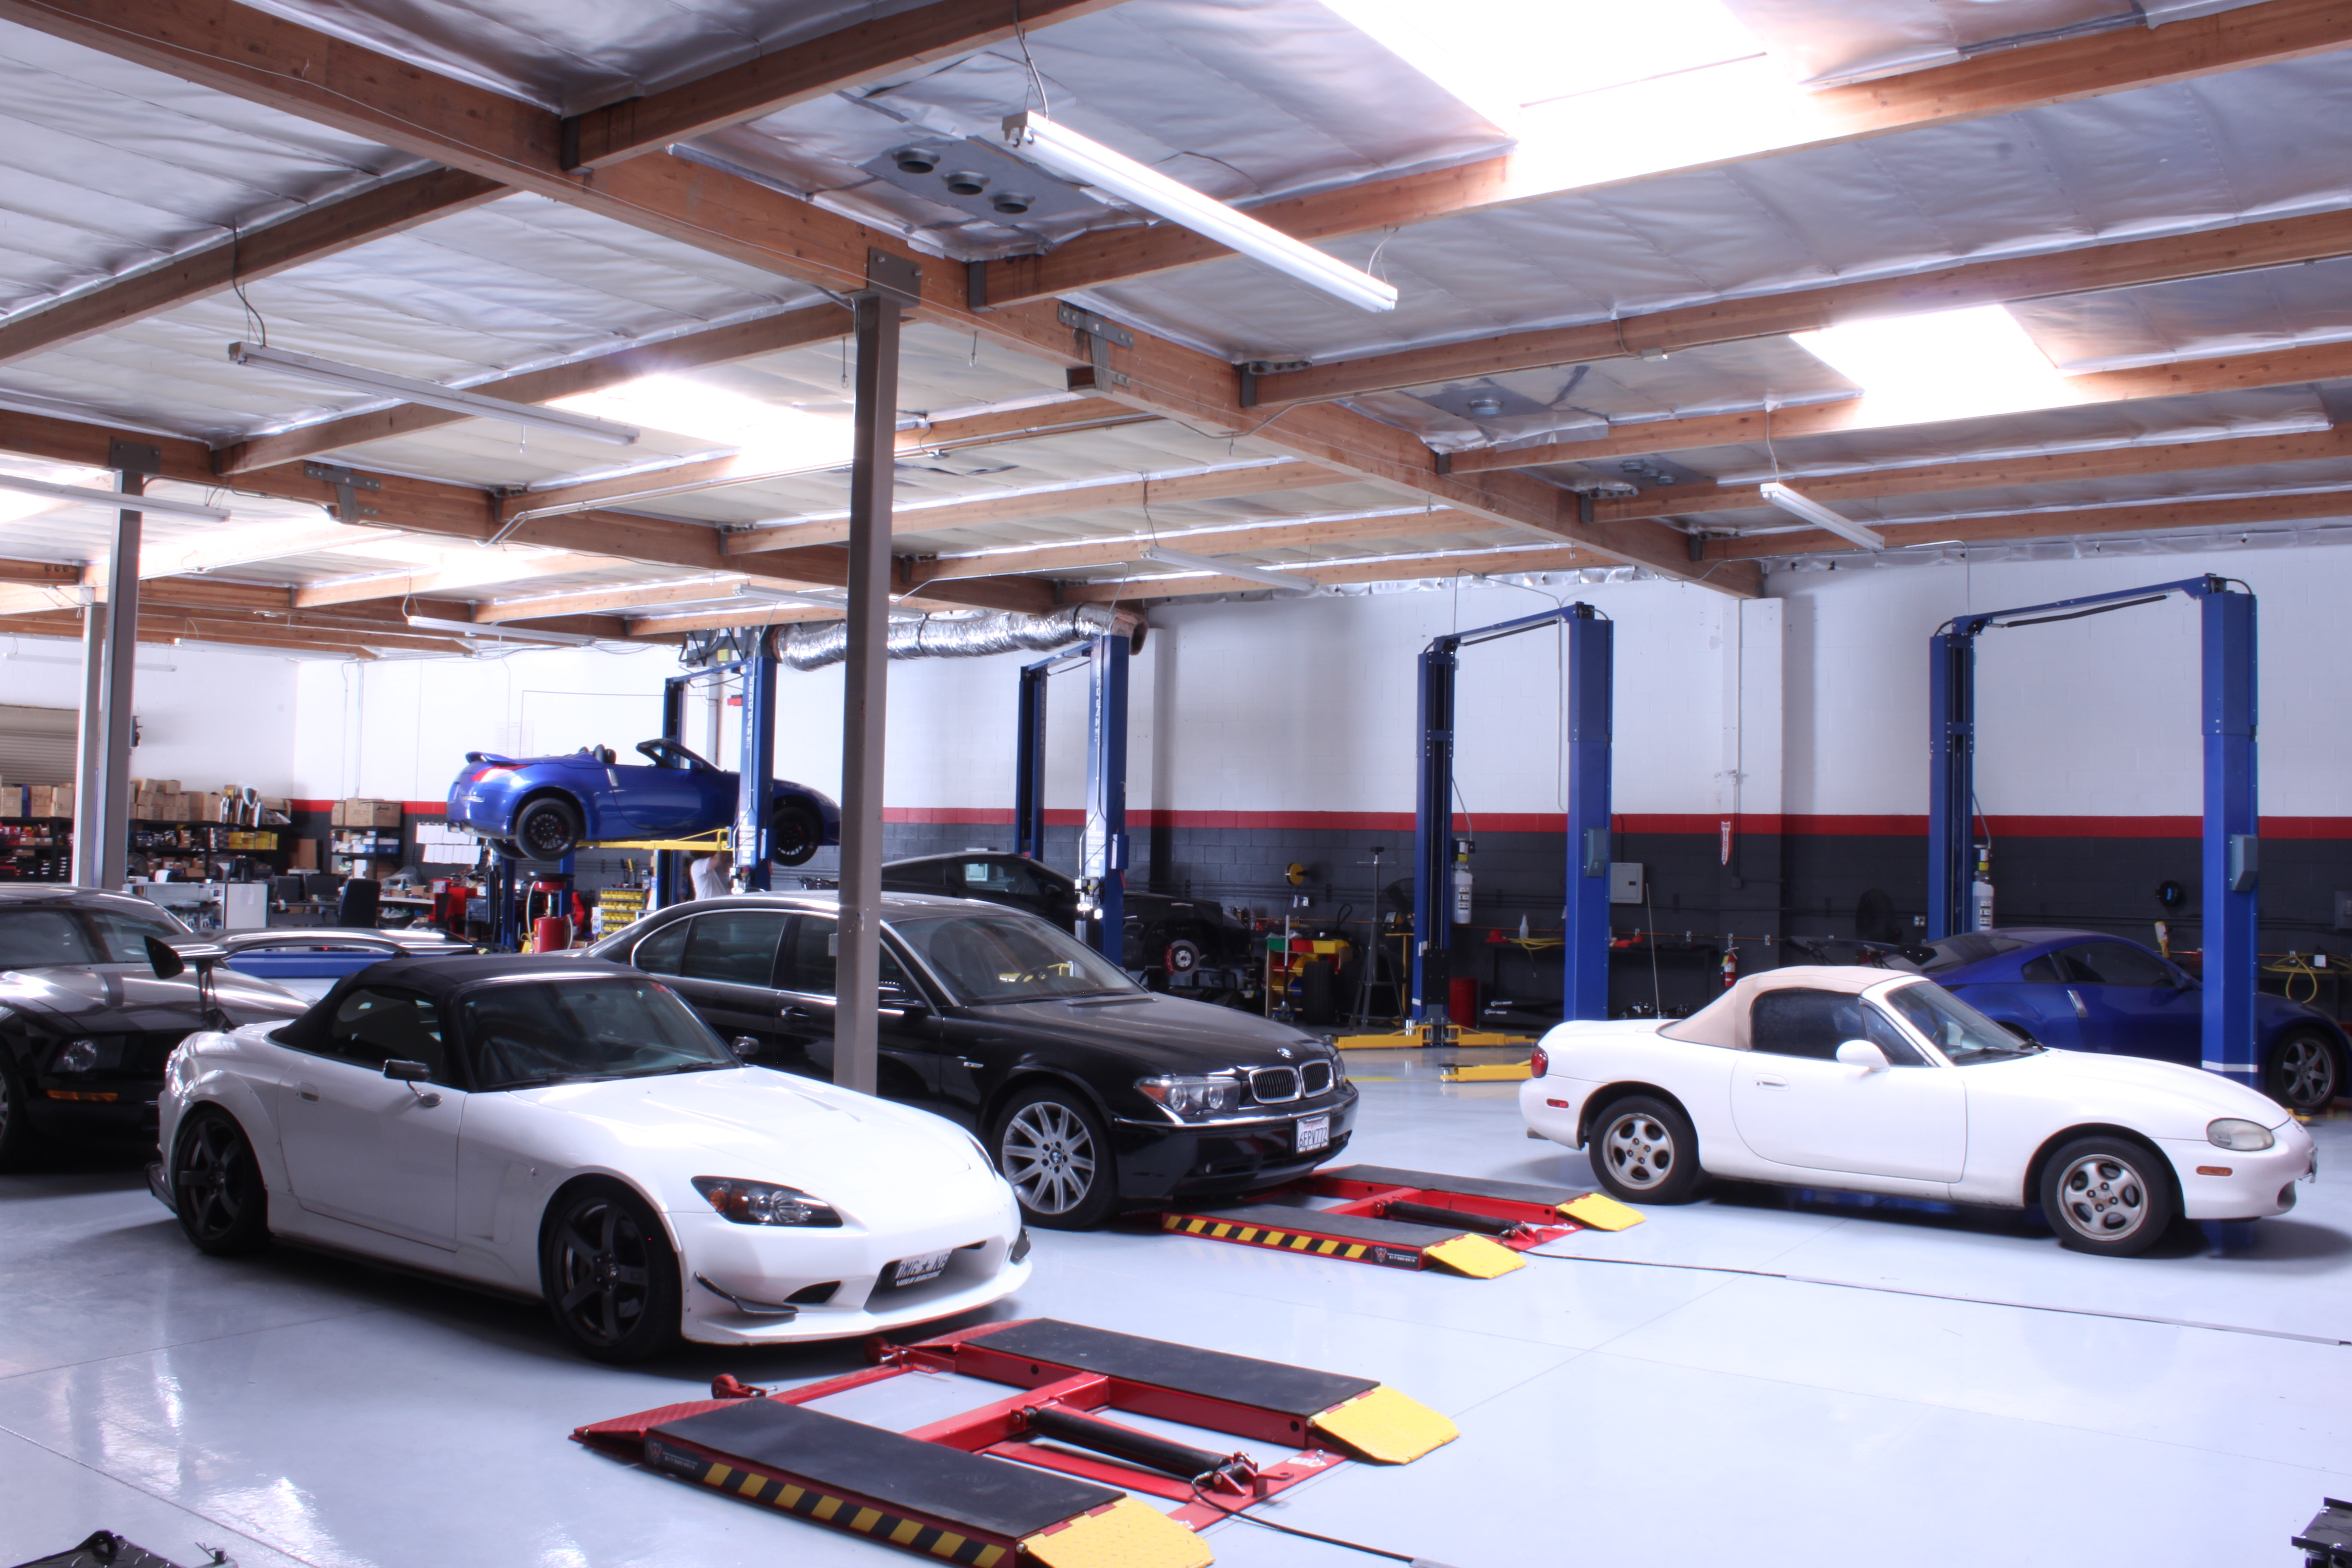 Your dream garage do it yourself auto shop 13409 garvey ave ste 4 your dream garage do it yourself auto shop 13409 garvey ave ste 4 baldwin park ca 91706 yp solutioingenieria Images